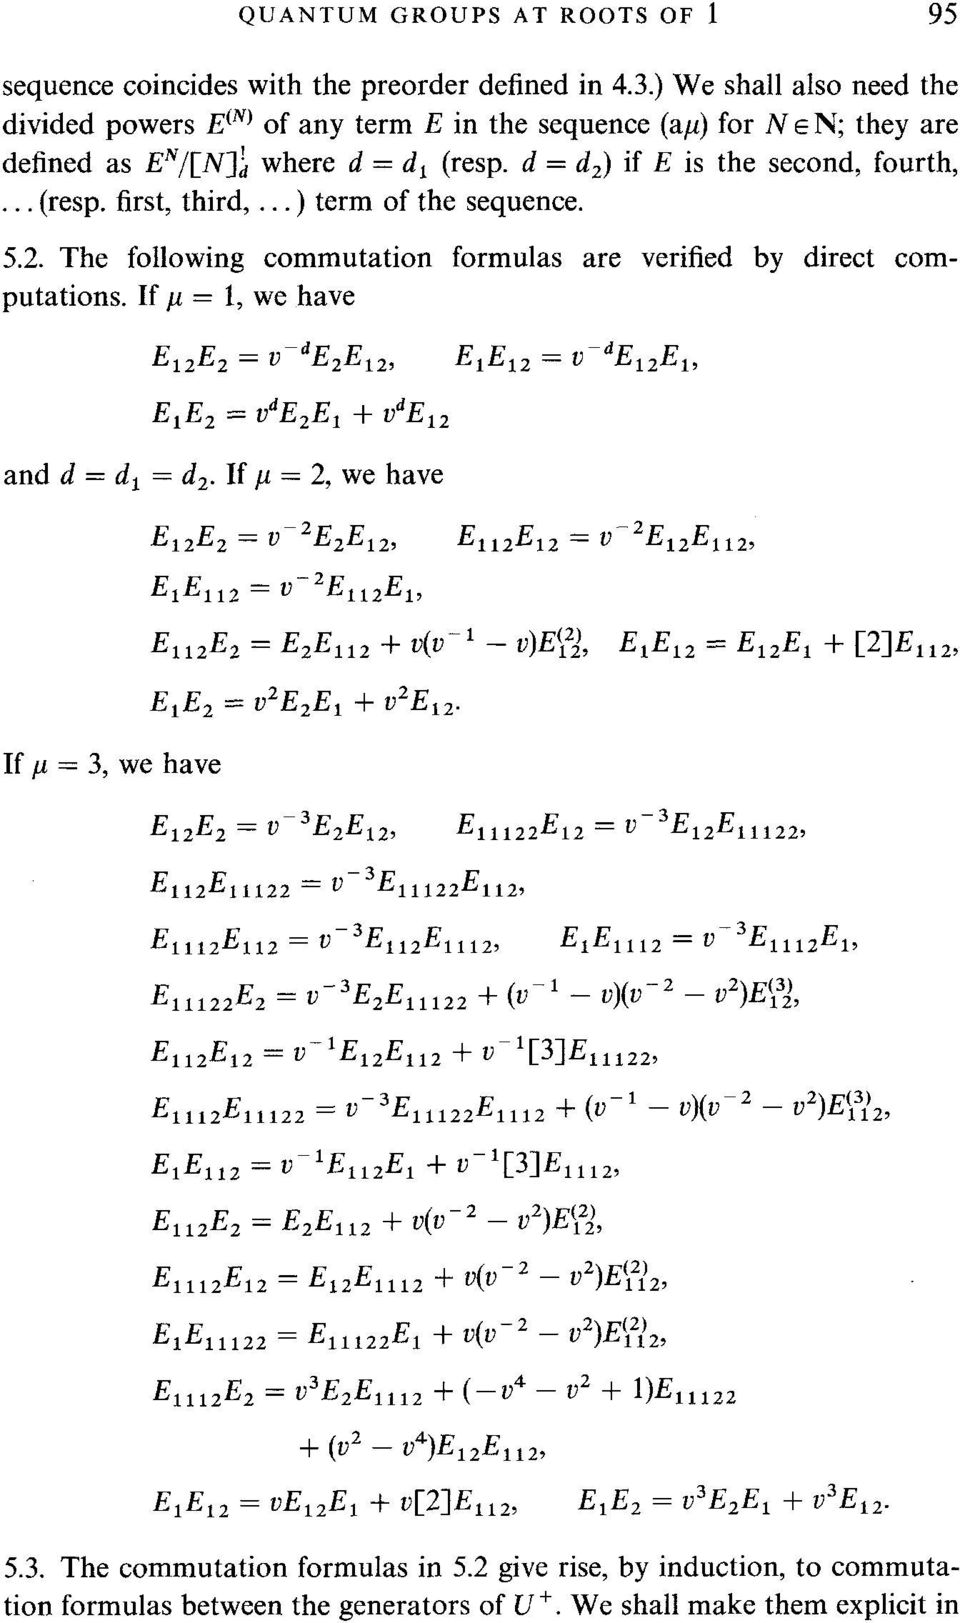 .. ) term of the sequence. 5.2. The following commutation formulas are verified by direct computations. If # = 1, we have E12E 2 = v de2e12, E1E12 = v ae12e1, E1E 2 = vae2e1 + vae12 and d = d 1 = d E.